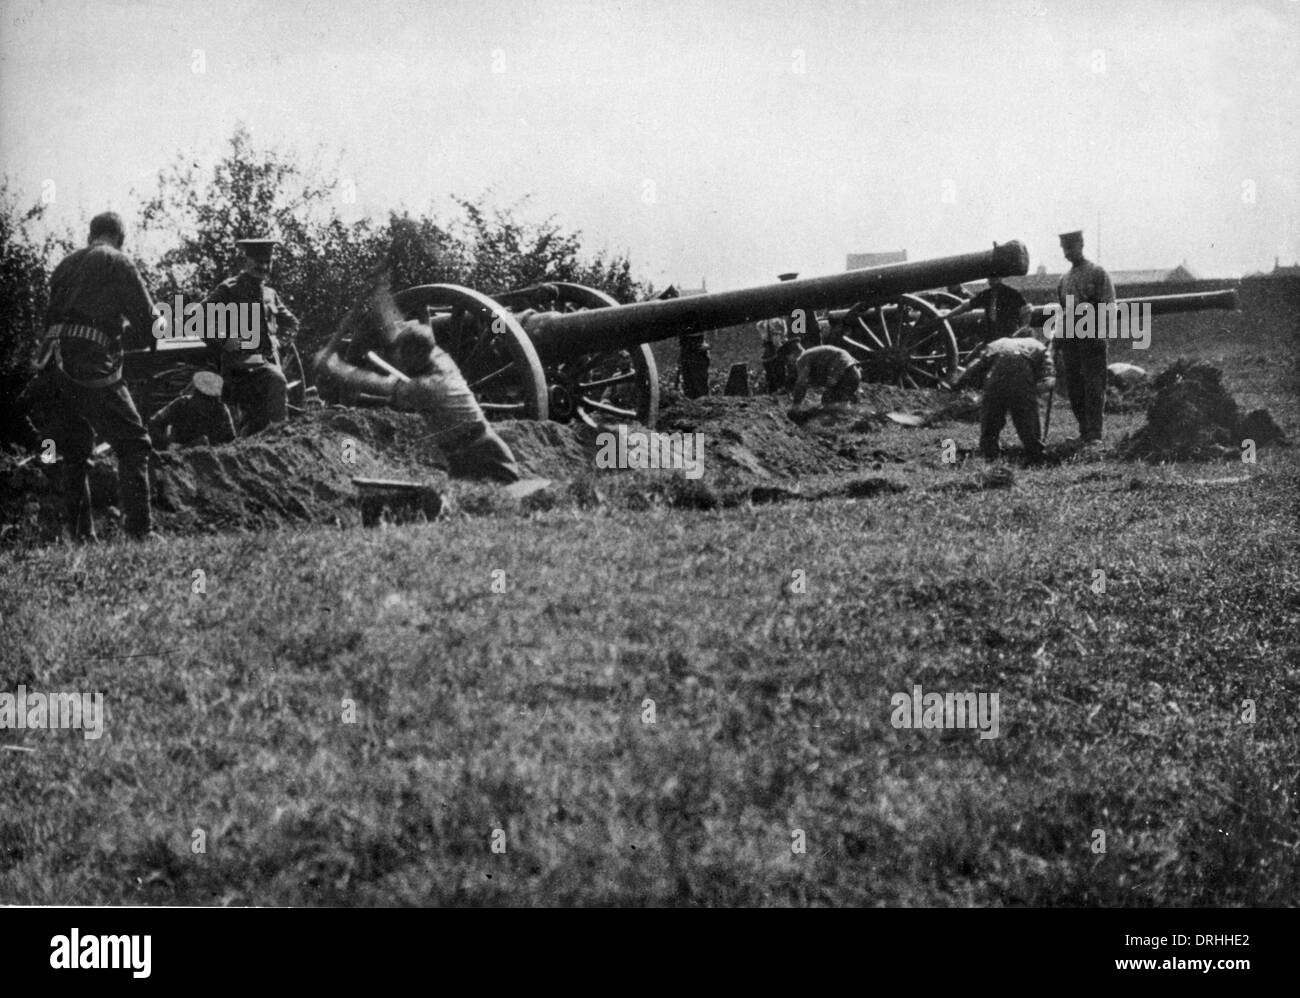 British 4.7 inch field guns, Western Front, WW1 - Stock Image